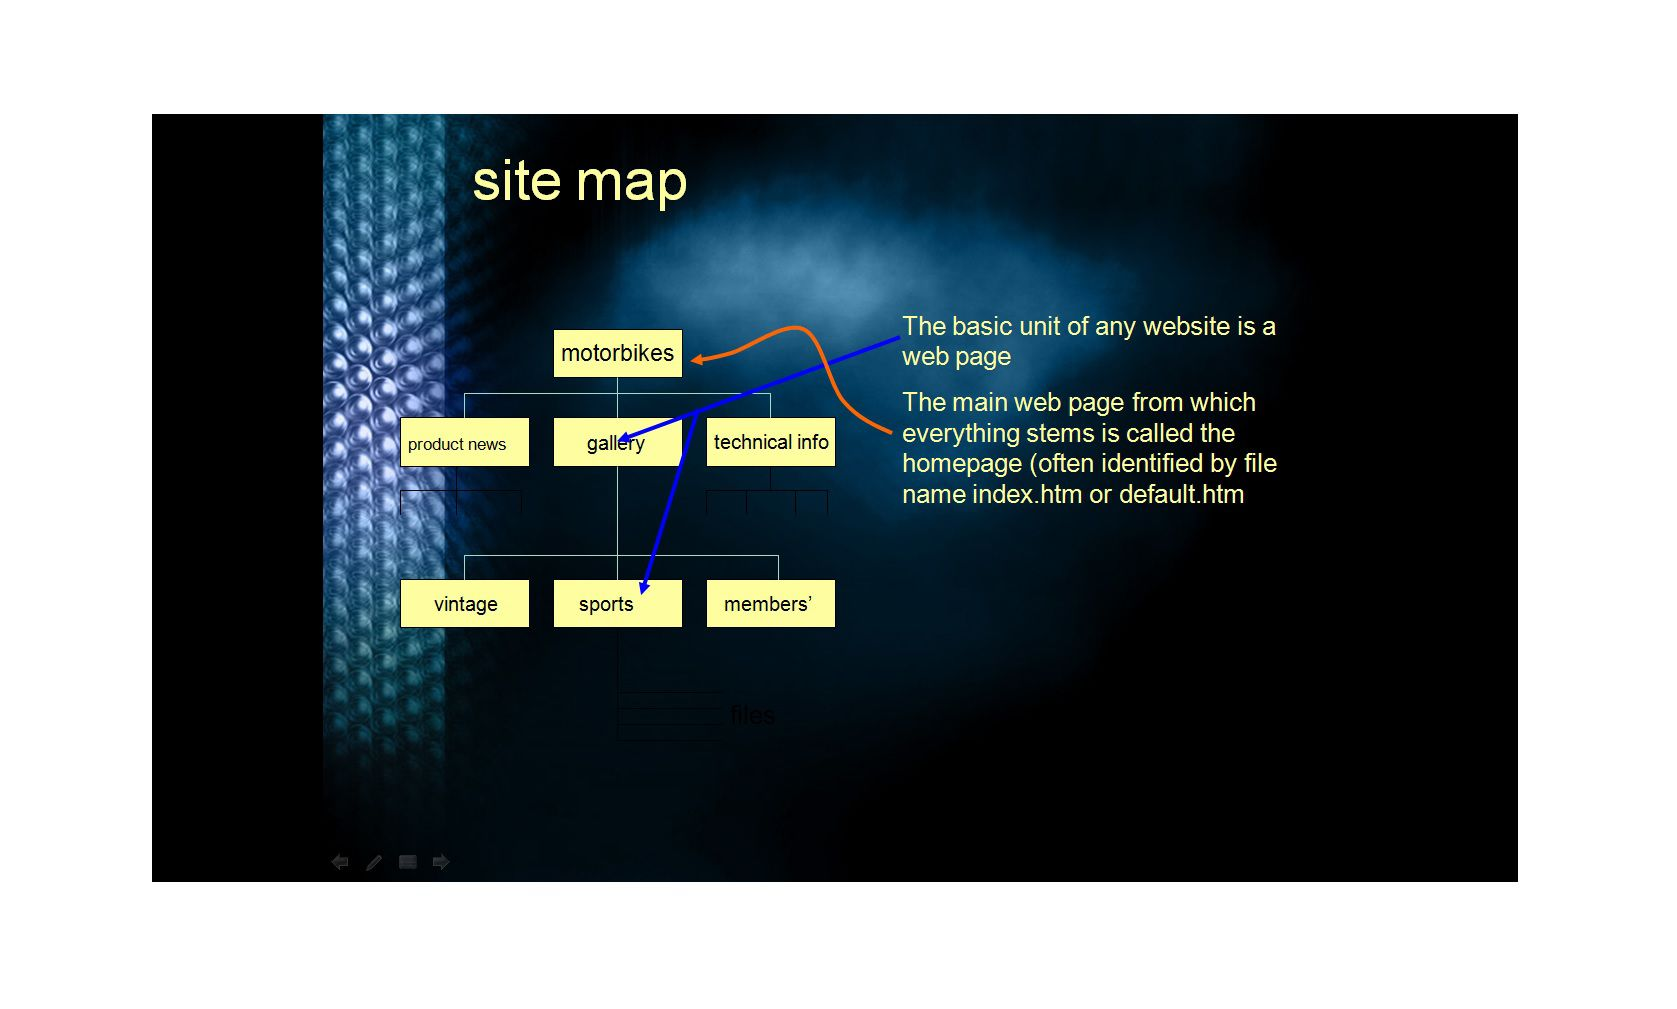 007 Excellent Website Site Map Template Free Excel Sample Full